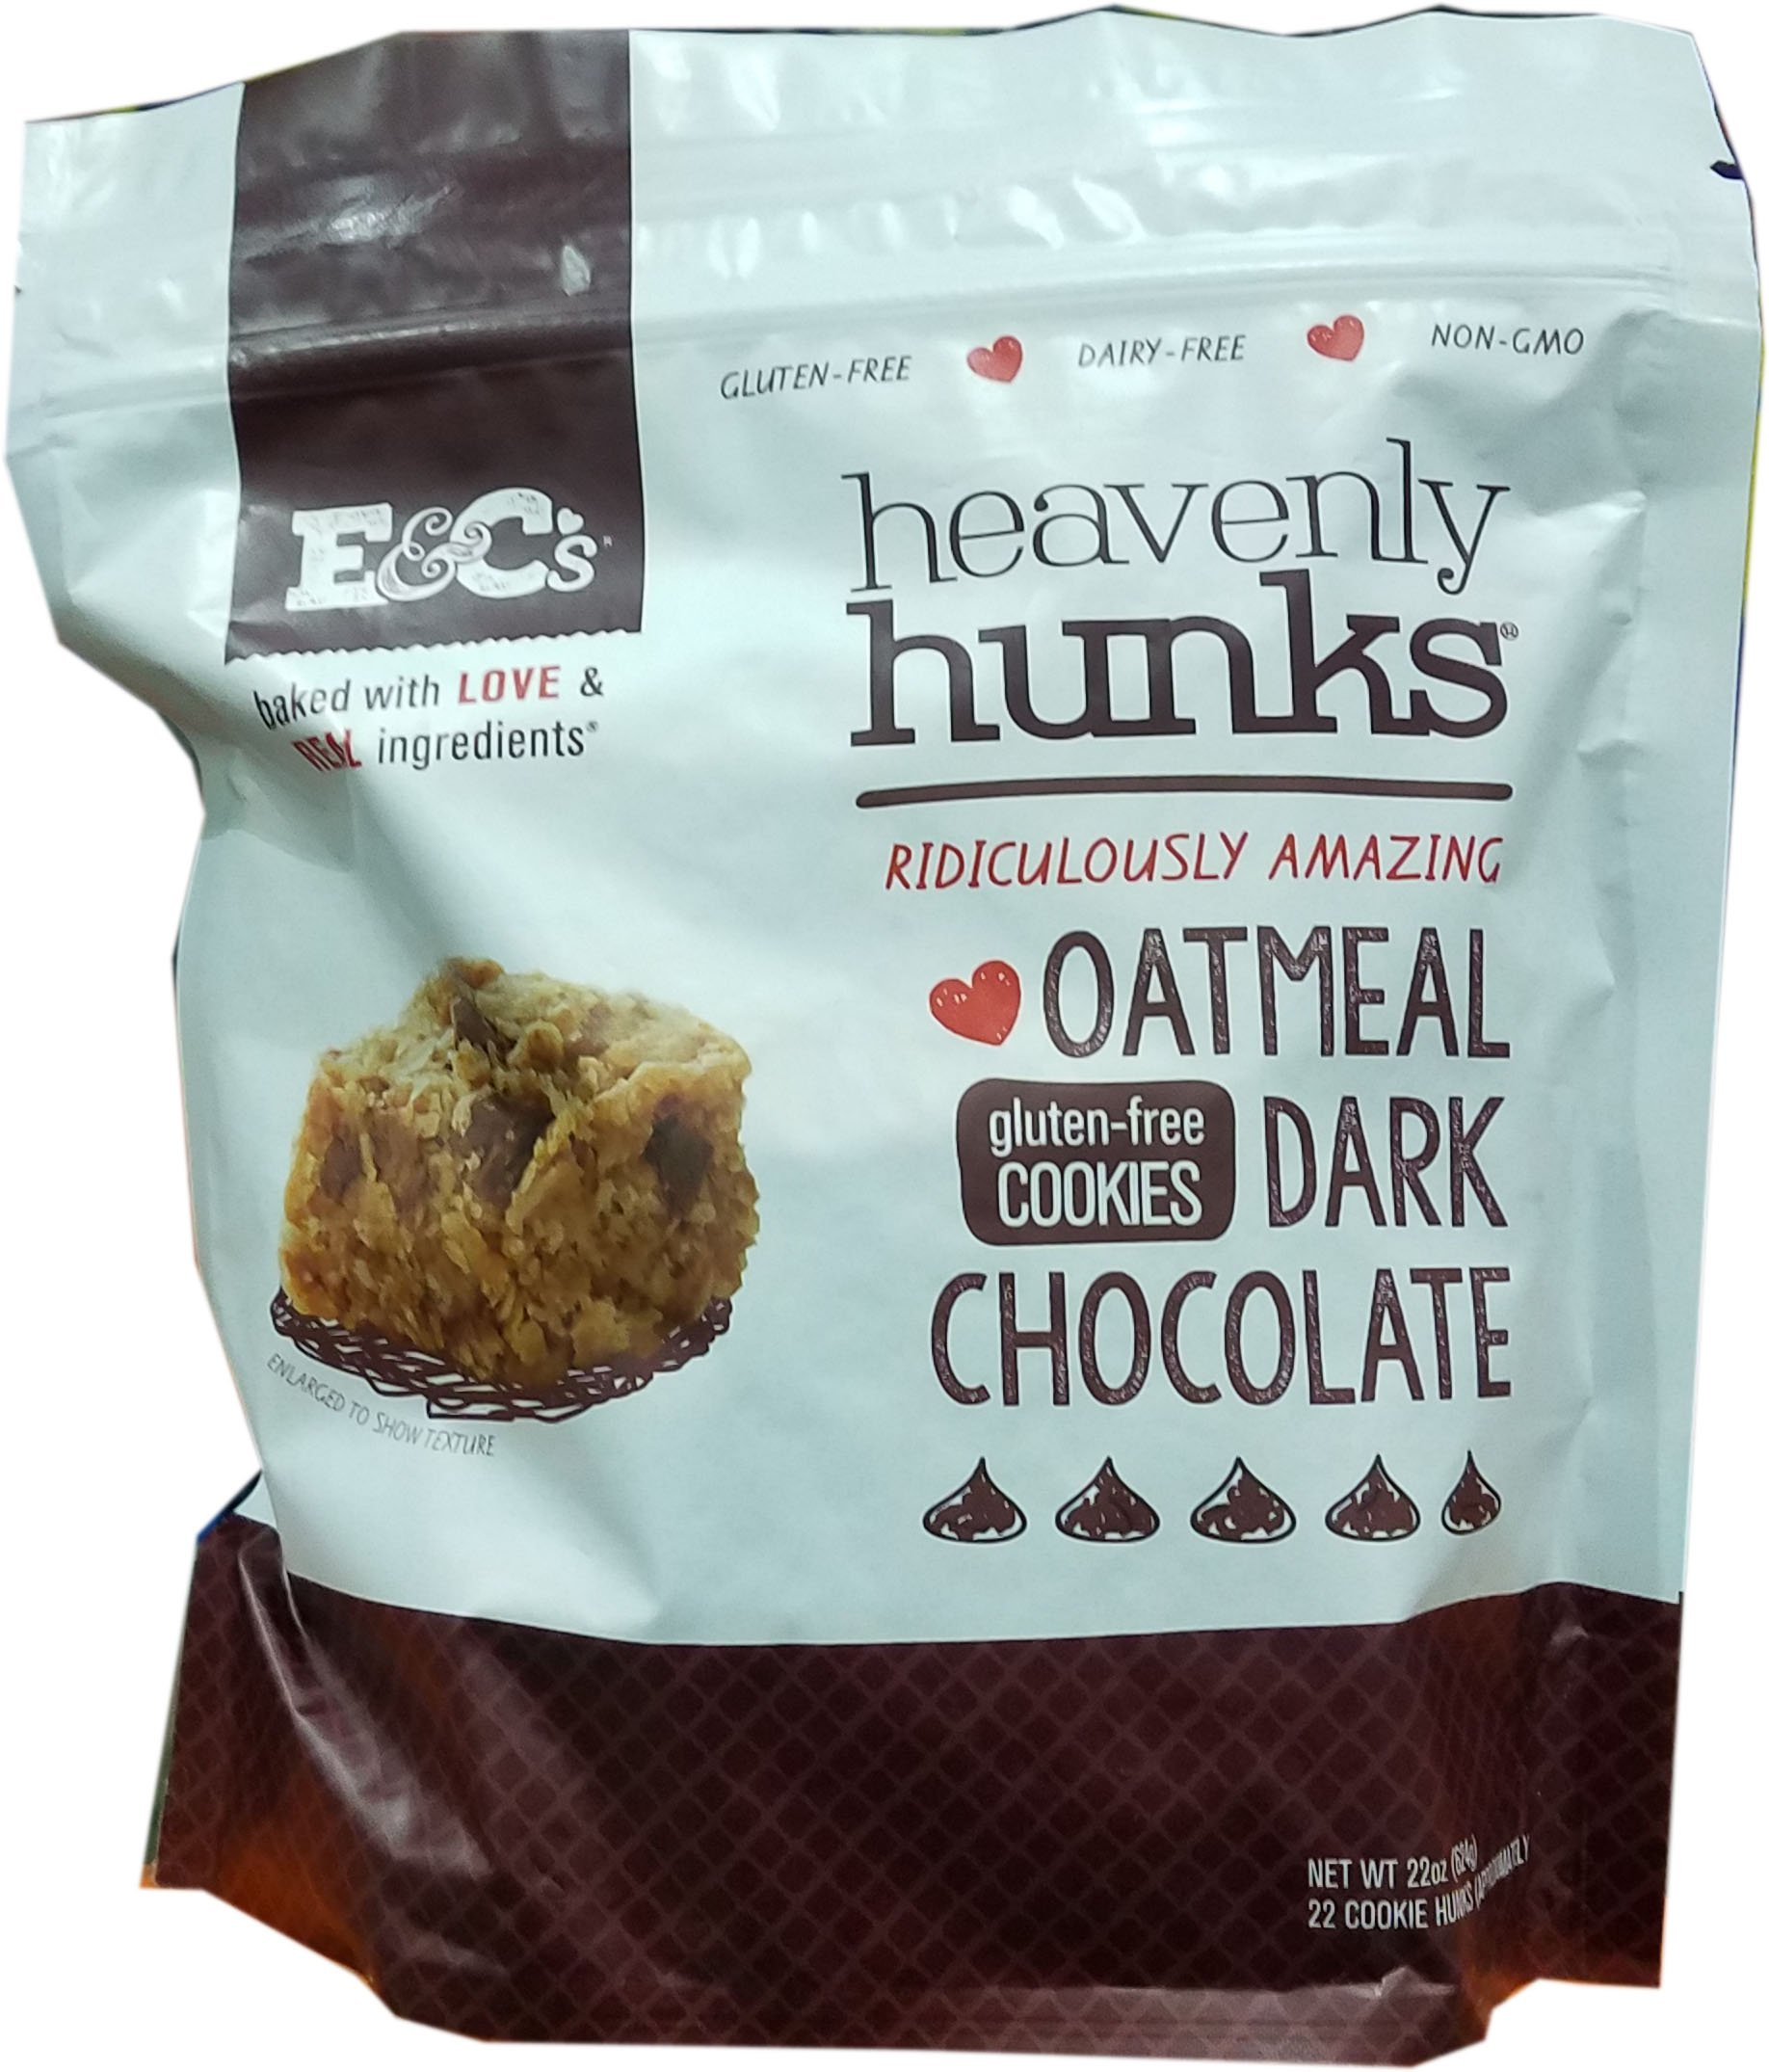 Amazon.com: Heavenly Hunks (White Chocolate Cranberry, 1 6oz bag)